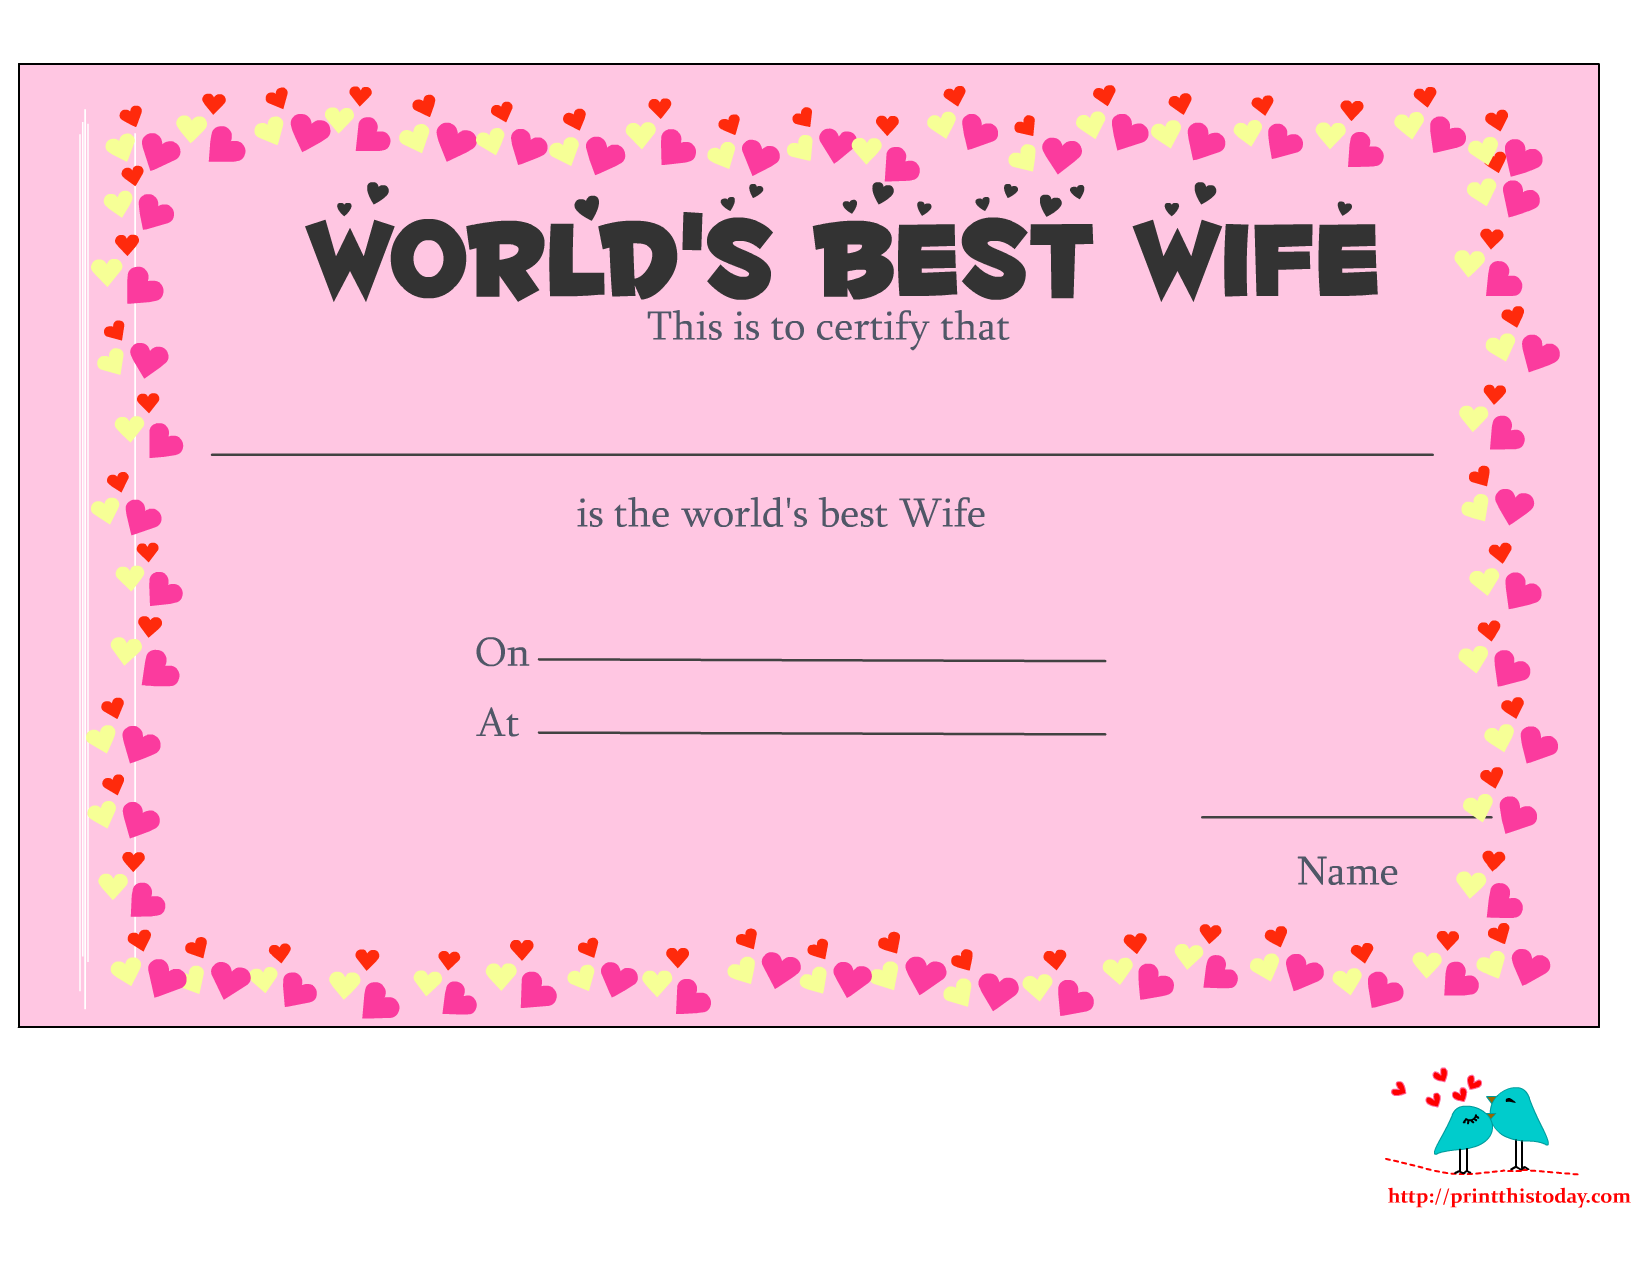 Free printable worlds best wife certificates worlds best wife certificate with hearts alramifo Choice Image